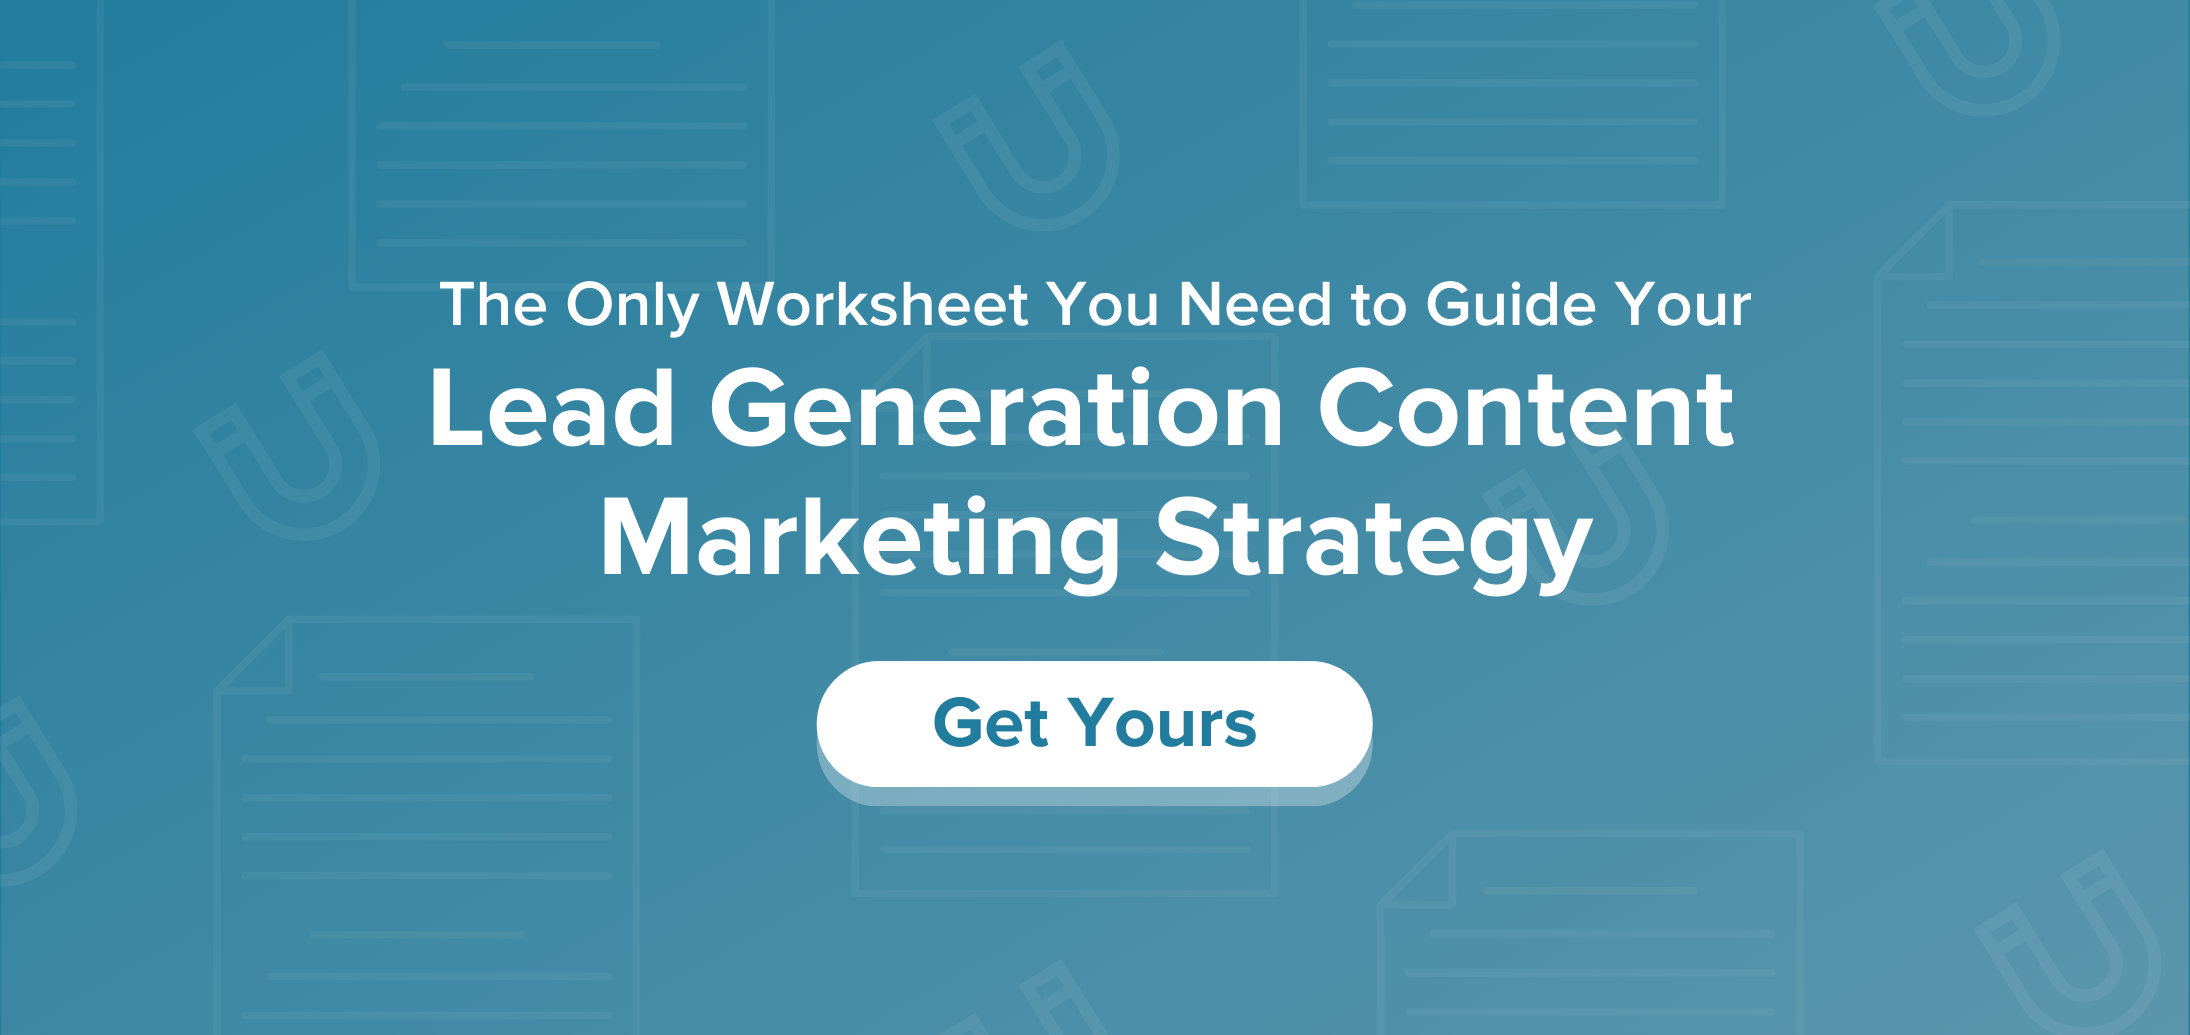 The Only Worksheet You Need to Guide Your Lead Generation Content Marketing Strategy. Click here to download.